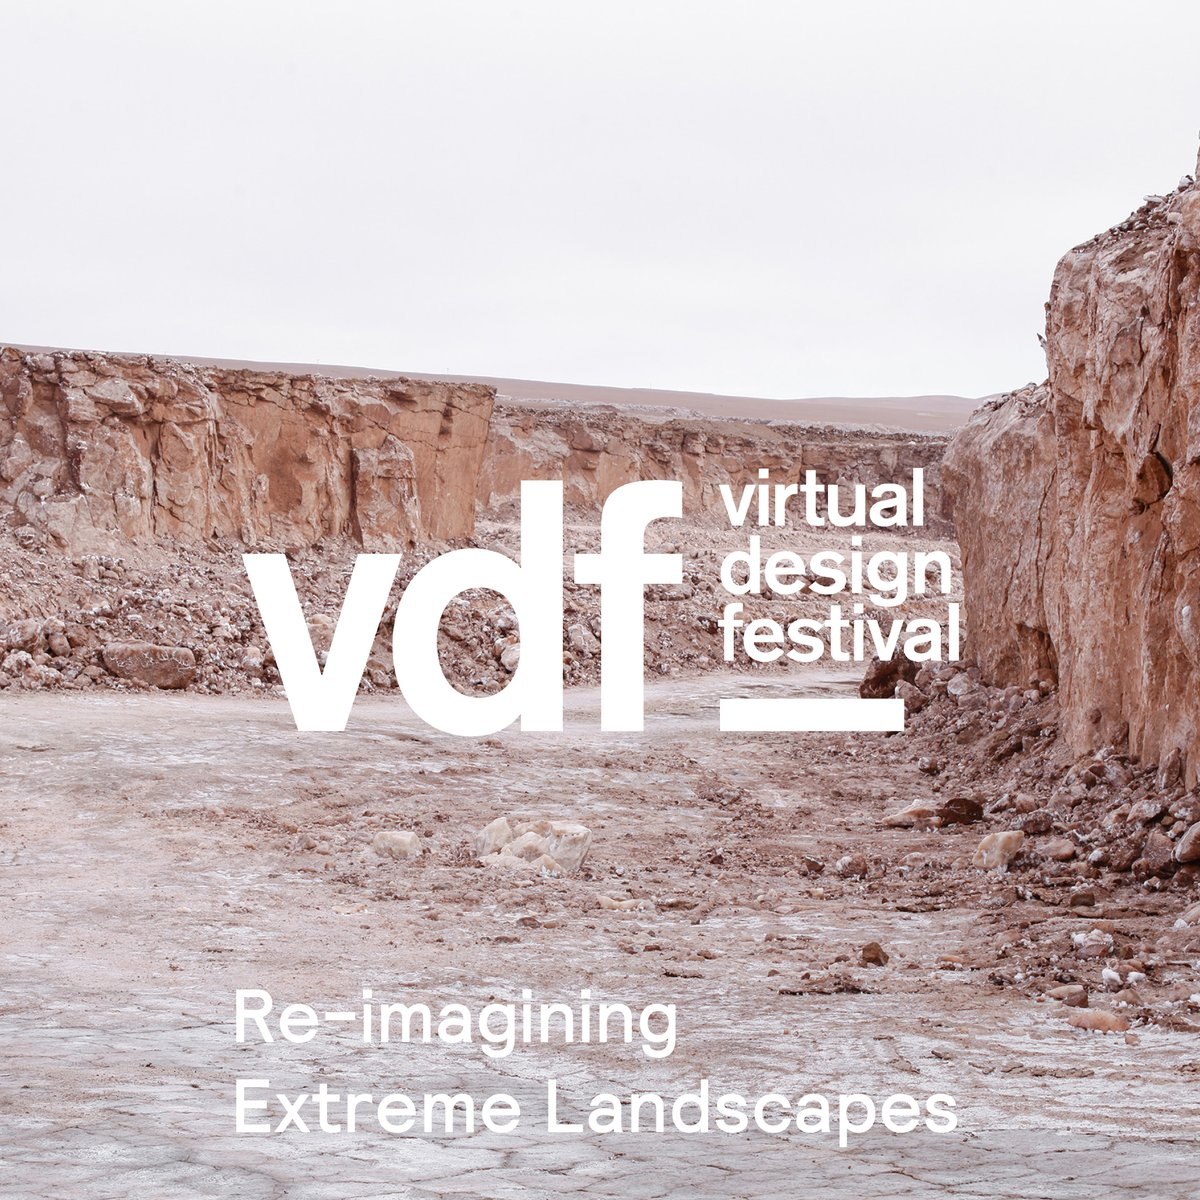 Re-Imagining Extreme landscapes is up now! A session exploring storytelling in art & design to examine the materiality of these environments and the complexities that they entail. Watch the films and chat with Kate Davies here @DesignMuseum @dezeen dezeen.com/2020/06/23/mal…